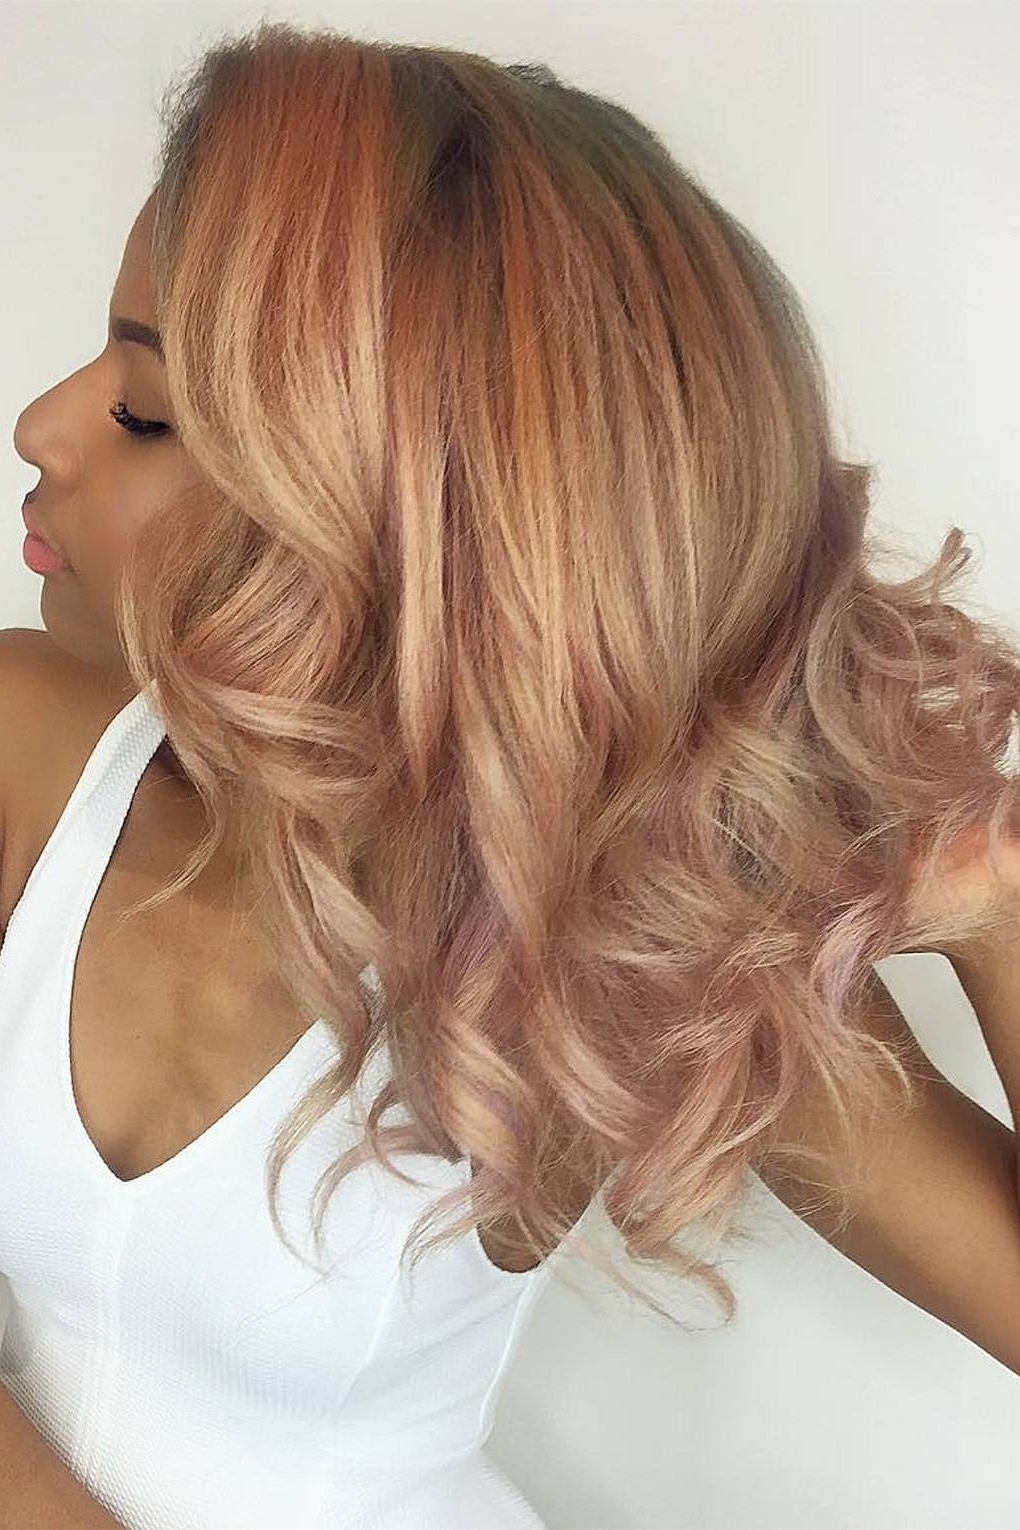 Recent African American Messy Ashy Pixie Hairstyles Regarding Rose Gold Hair Colour: The Trend For The Perfect Pink Hair Shades (View 17 of 20)